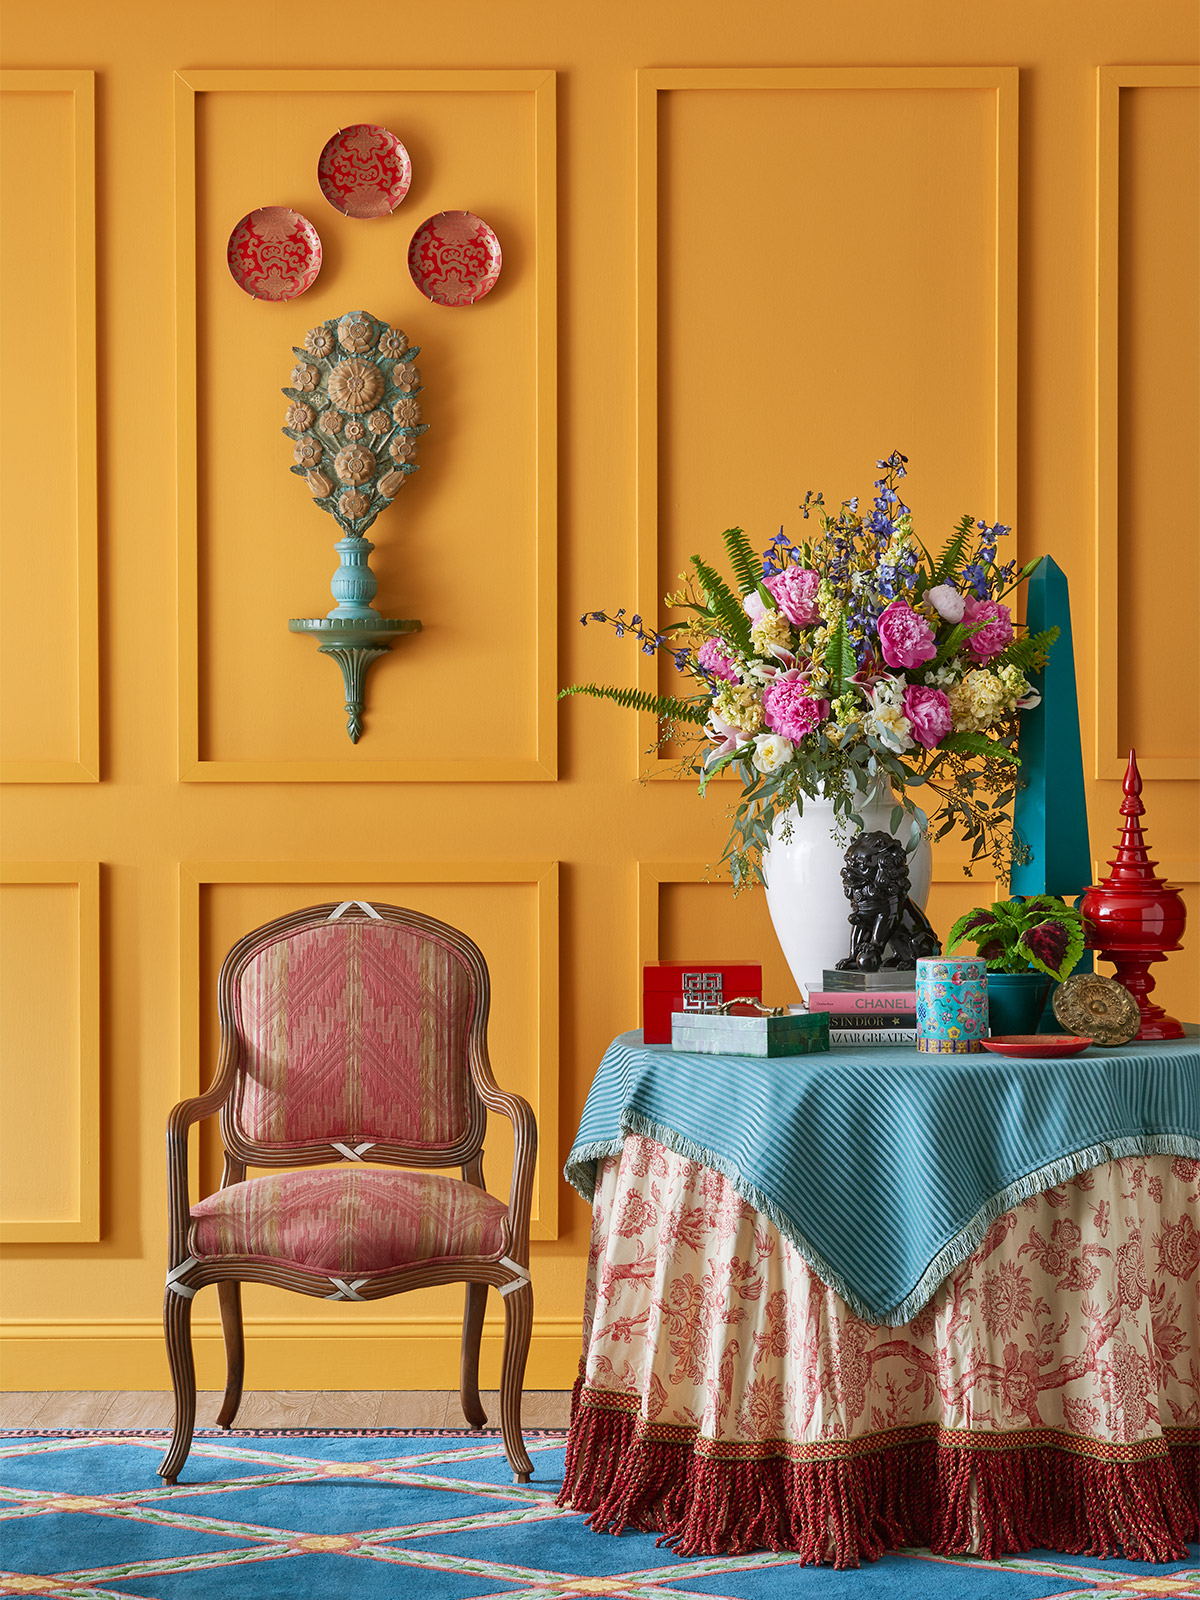 2019 paint color forecast from sherwin williams on paint colors by sherwin williams id=91396